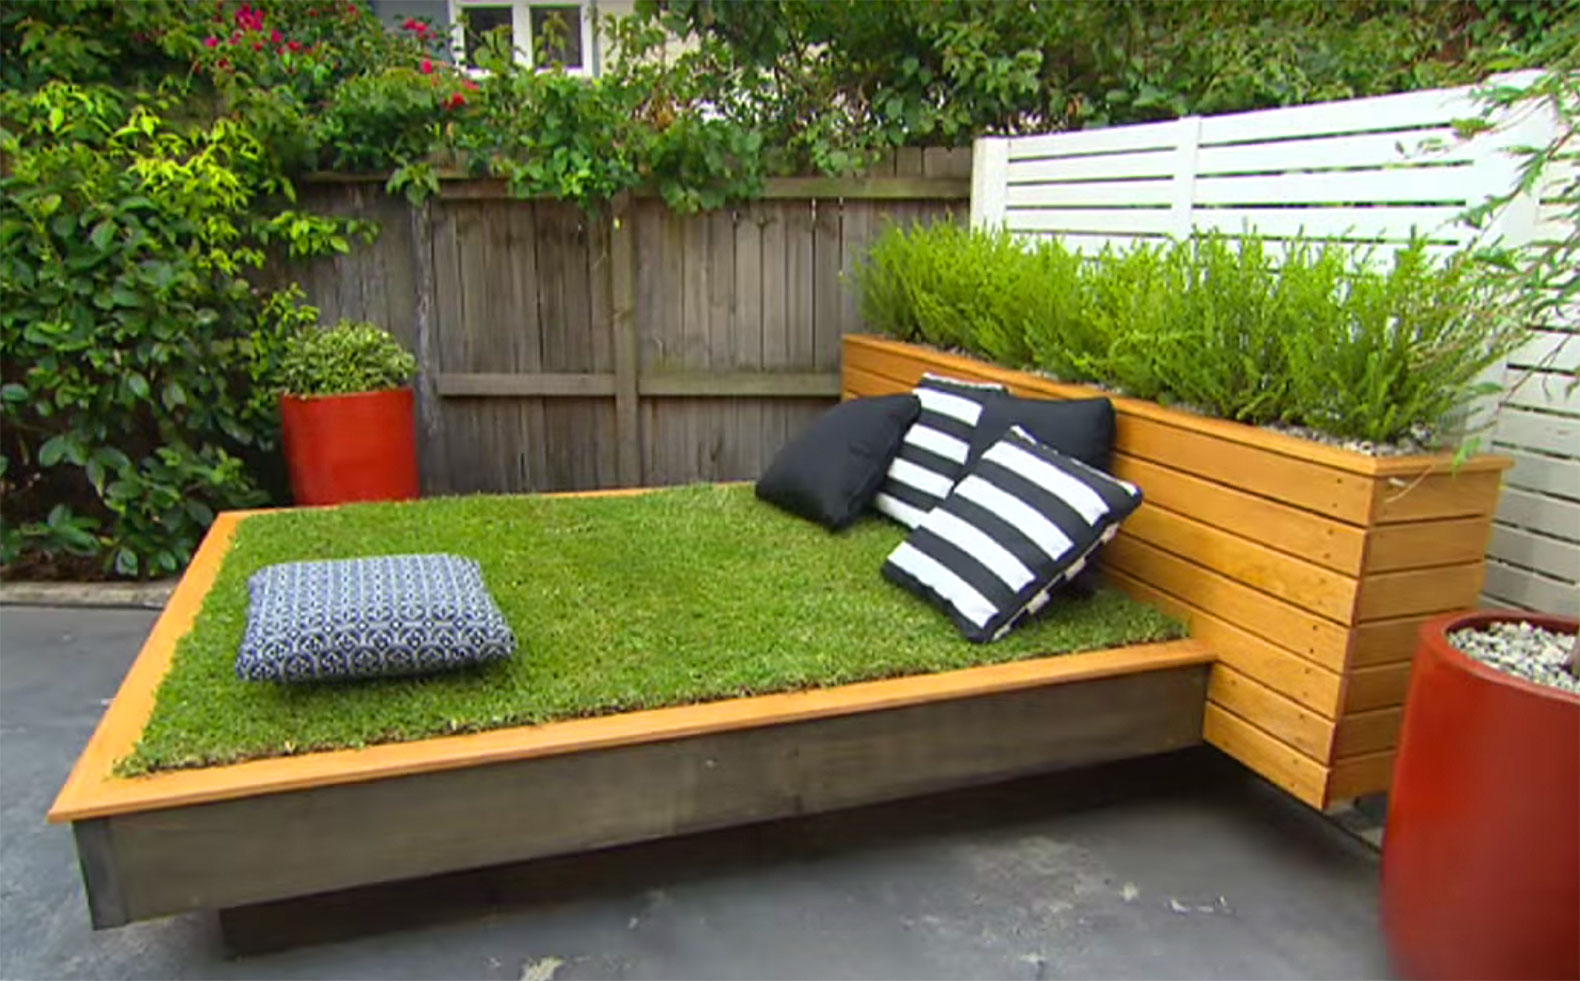 How to make an amazing grass daybed out of wood pallets